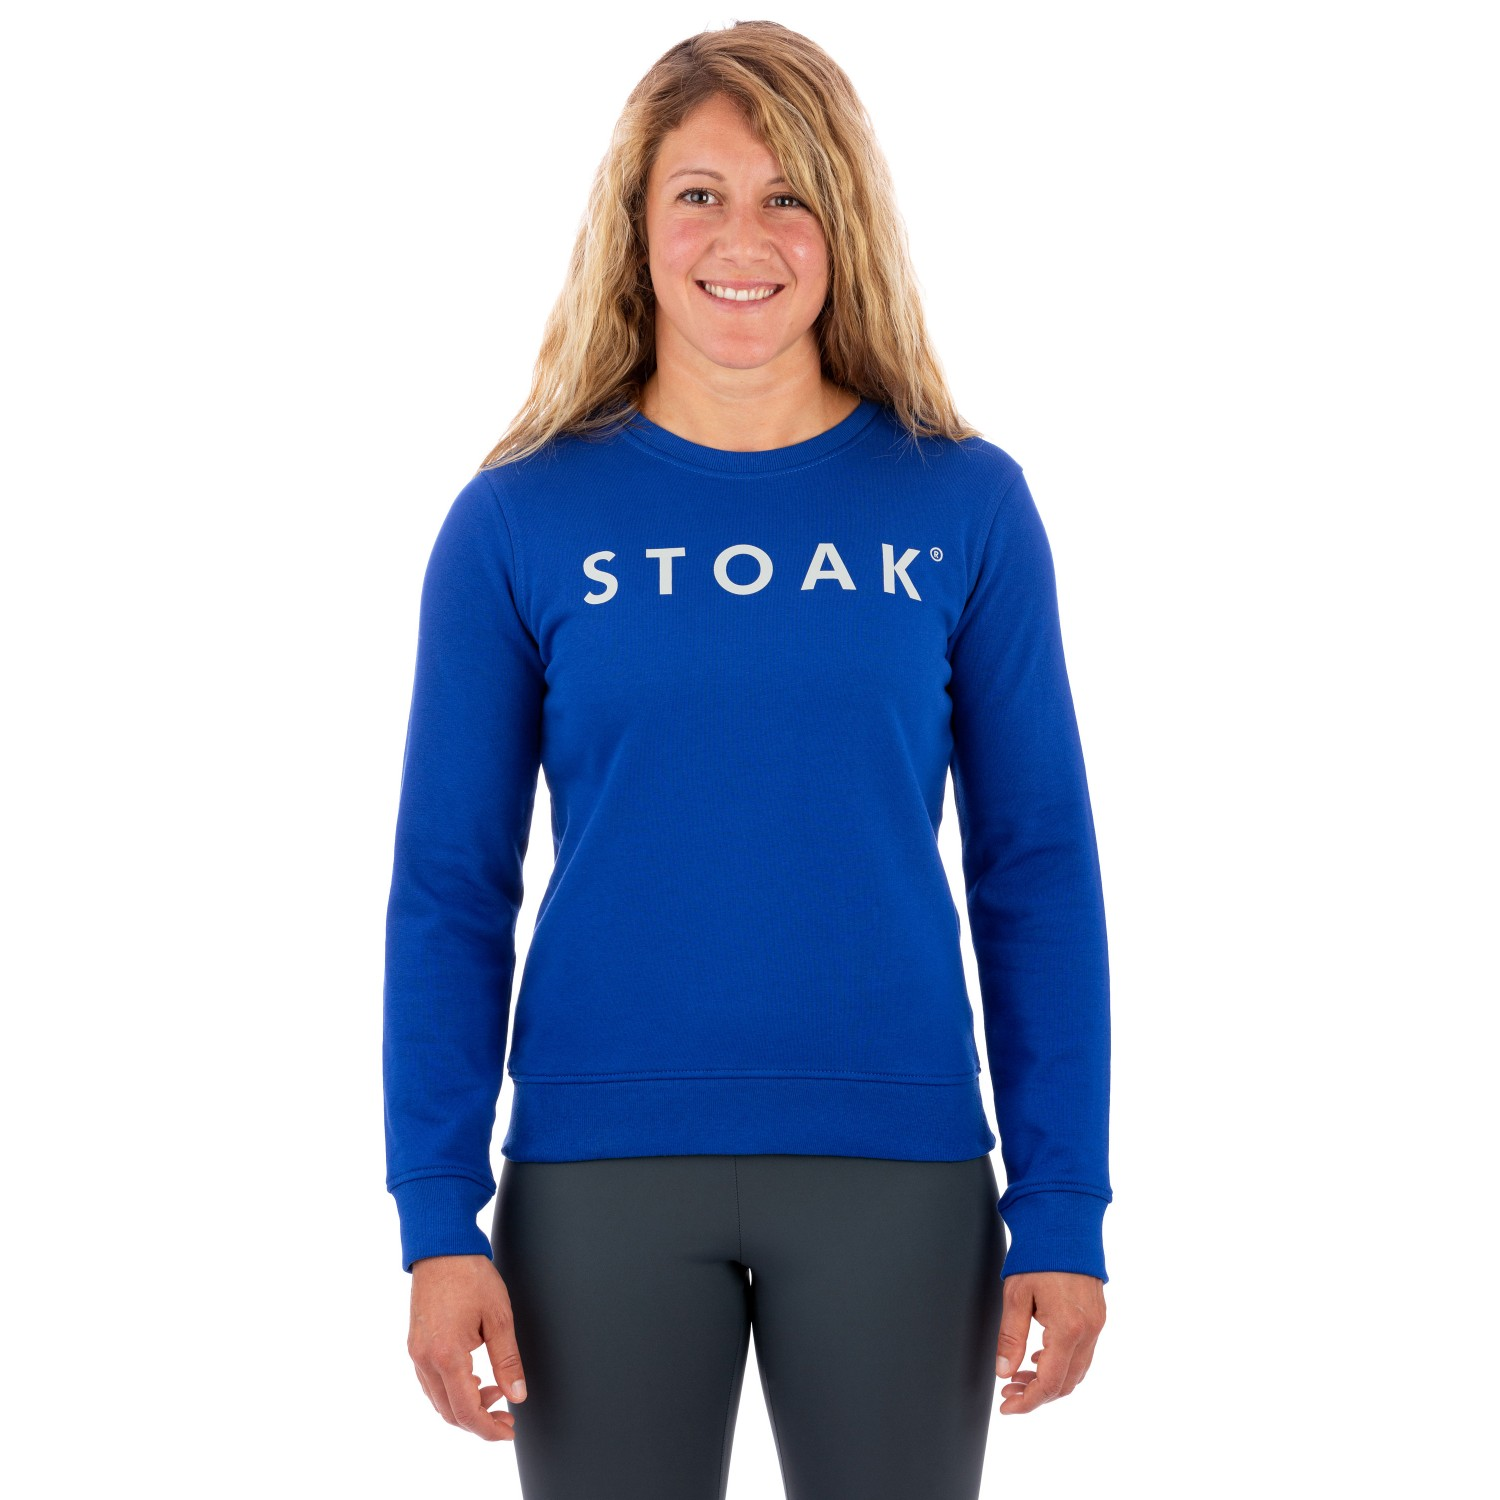 STOAK BLUE CRUSH Crewneck